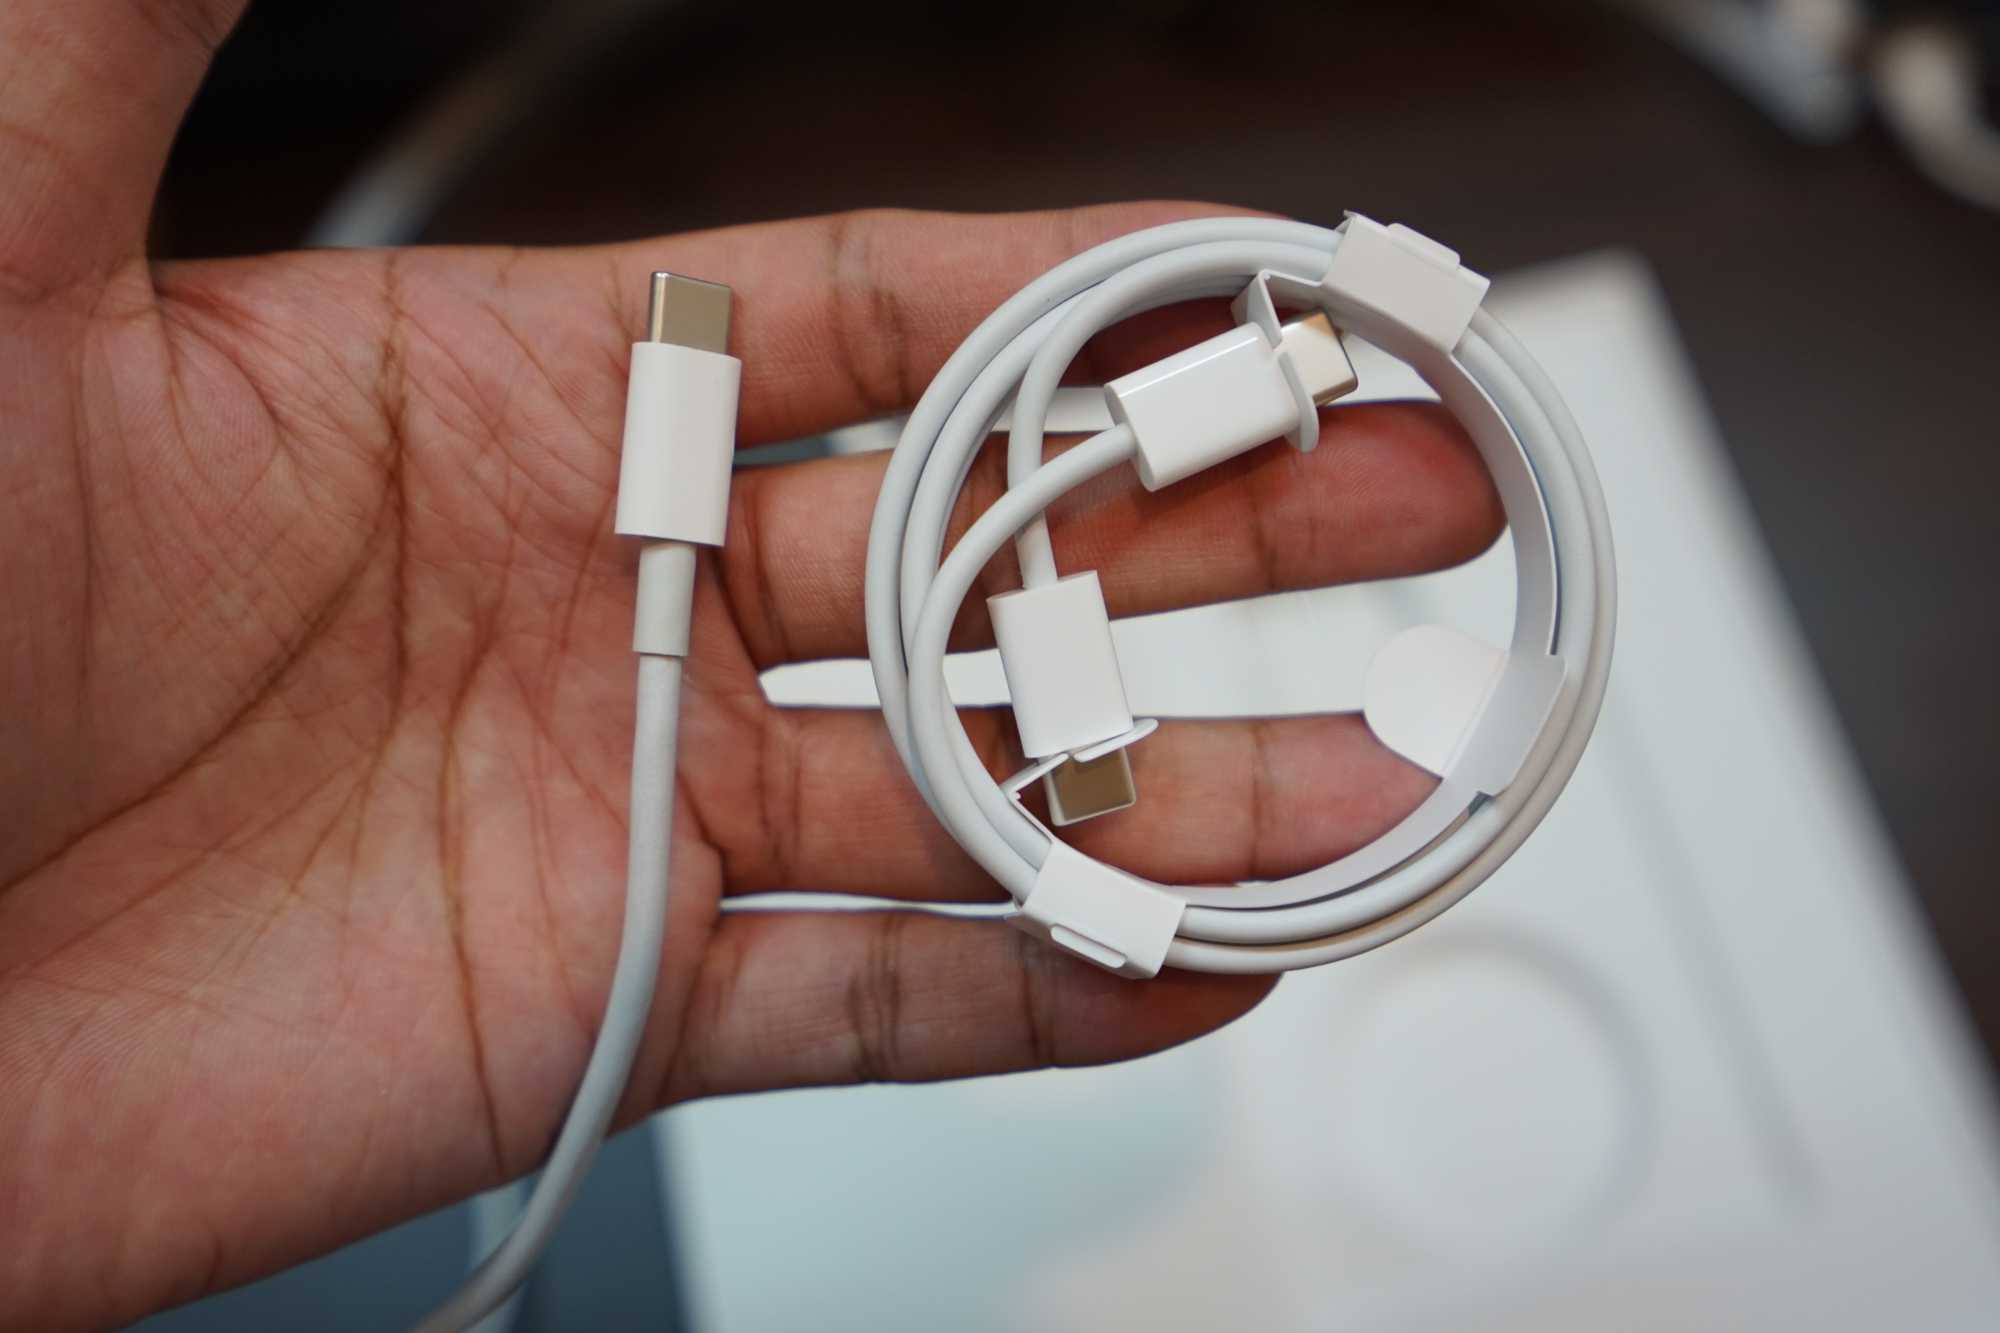 Compare Apple USB-C to USB-C Cable from iPad Pro 11-inch and MacBook Pro